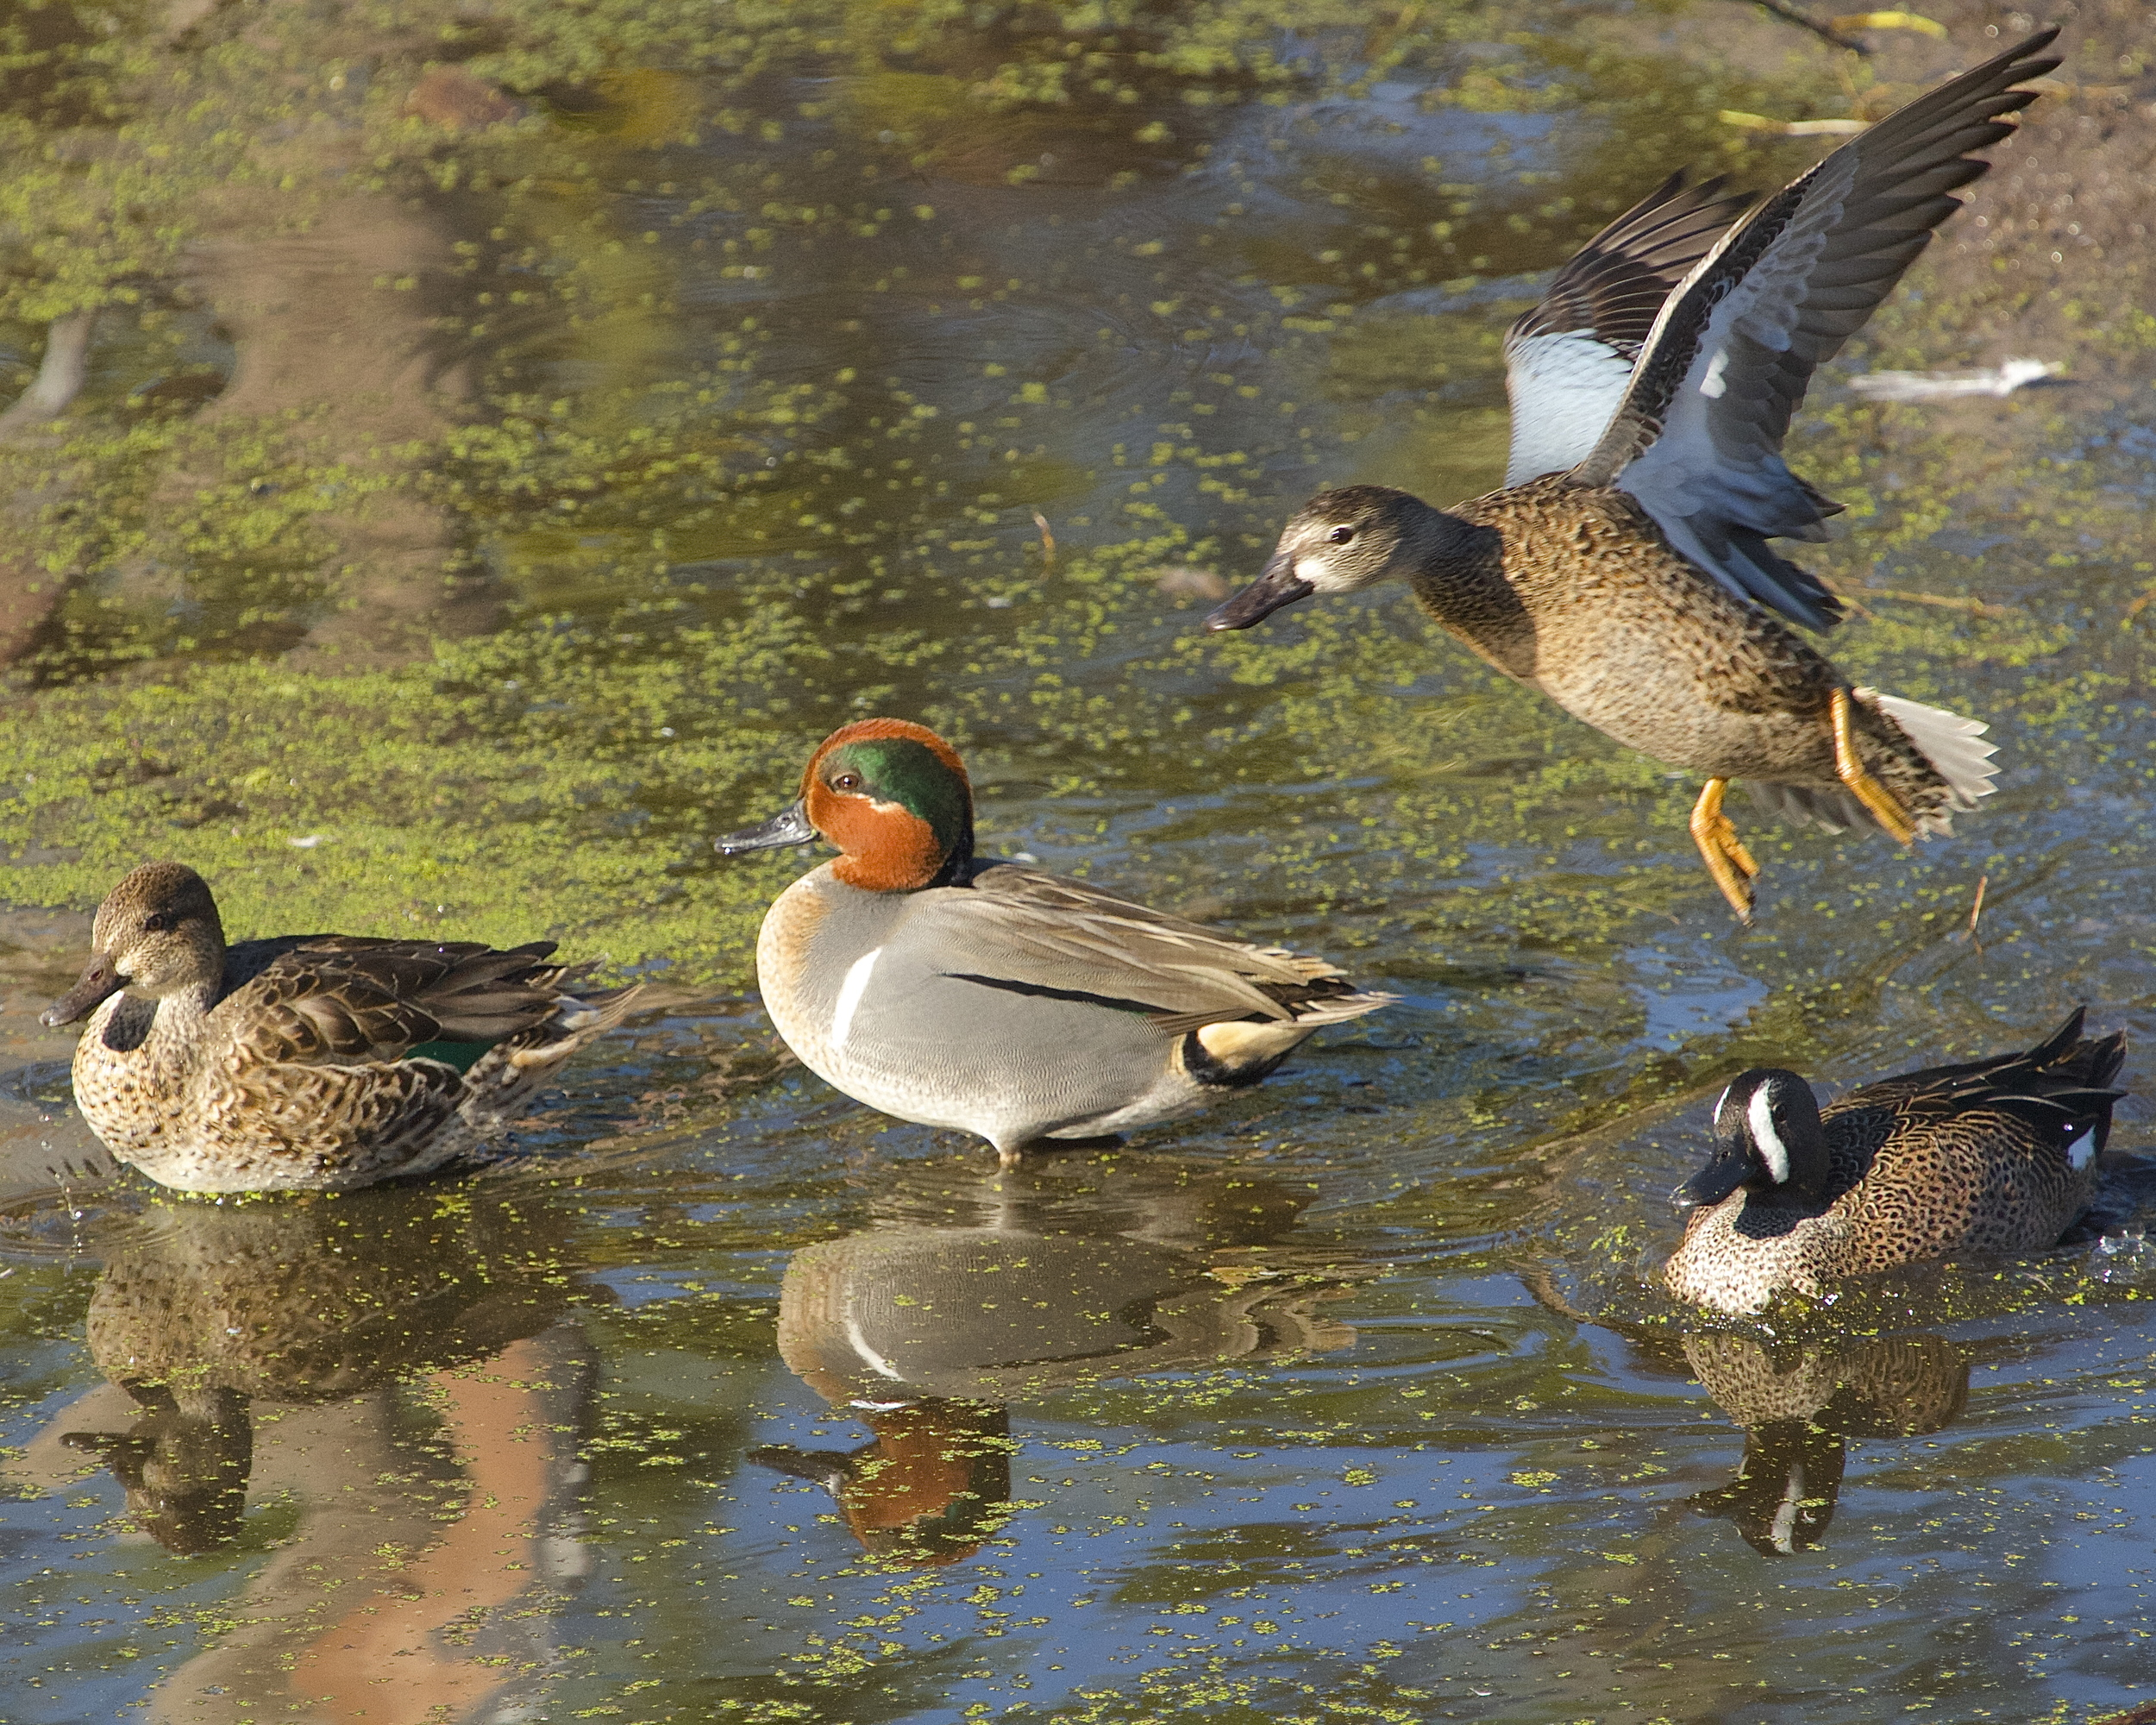 Ducks on the river. Green Wing Teal (two on the left) and Blue Wing Teal (on the right).